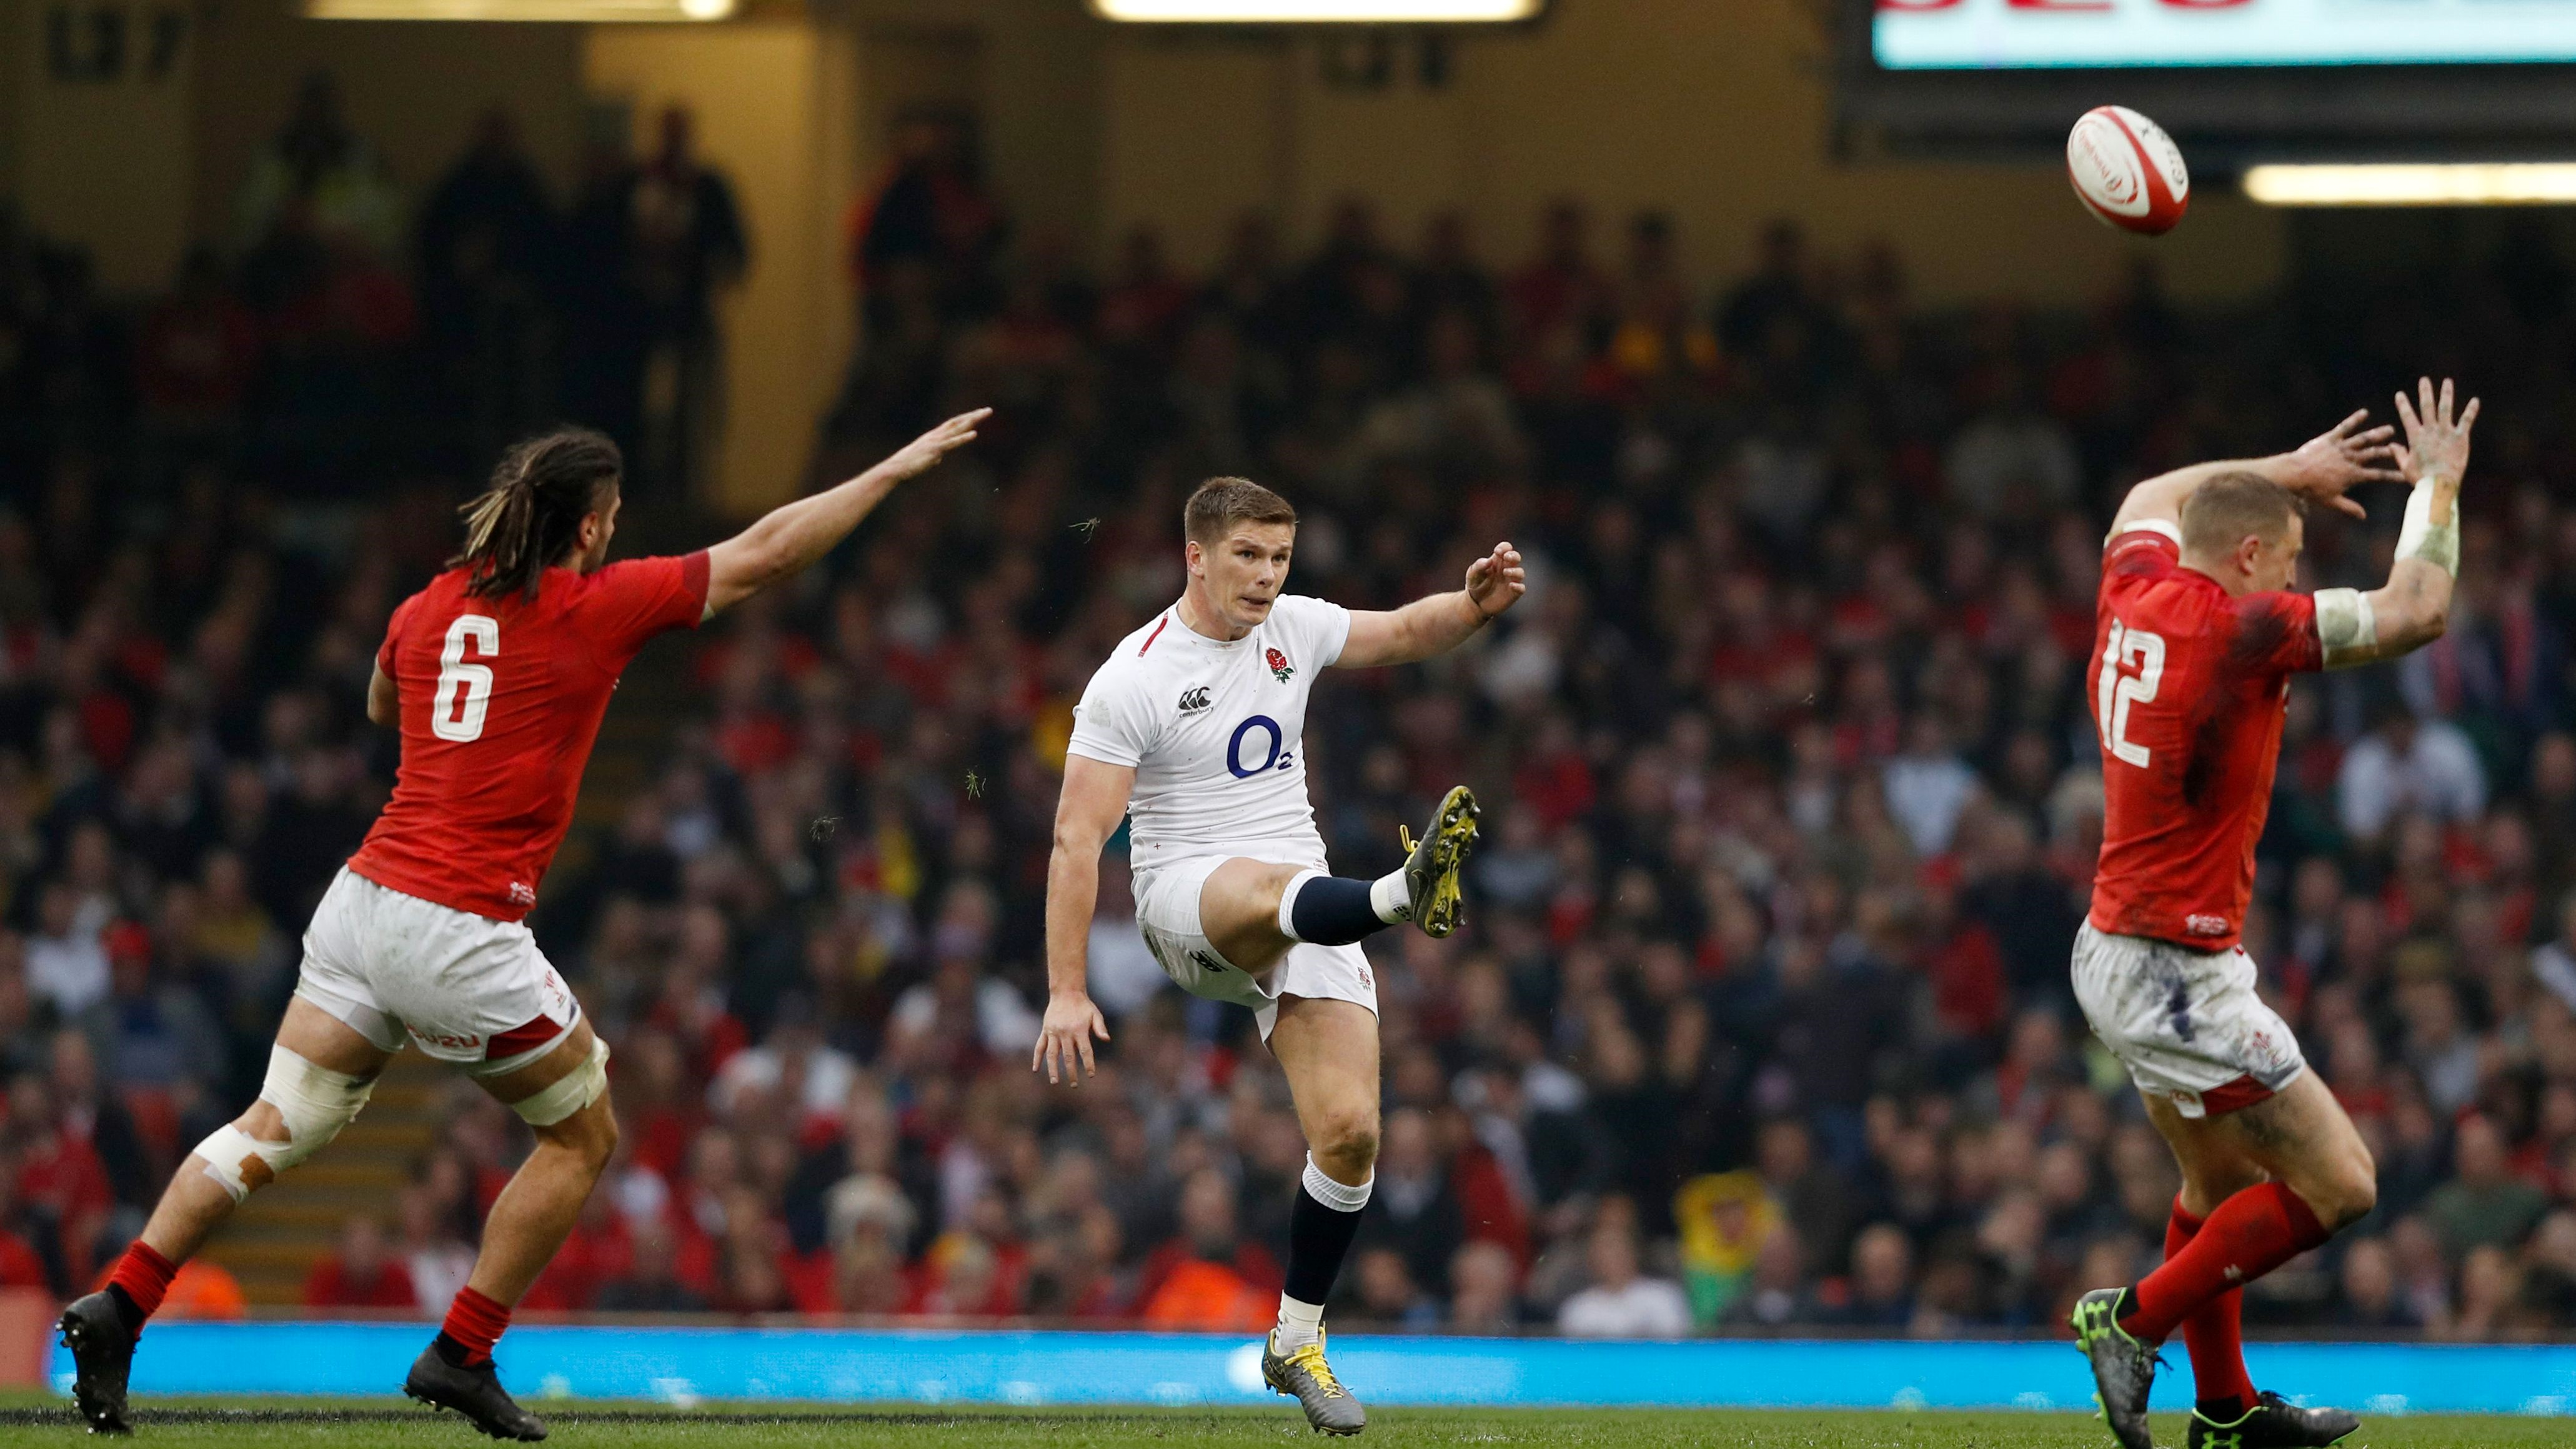 England vs Wales live stream: how to watch Six Nations 2020 rugby online from anywhere